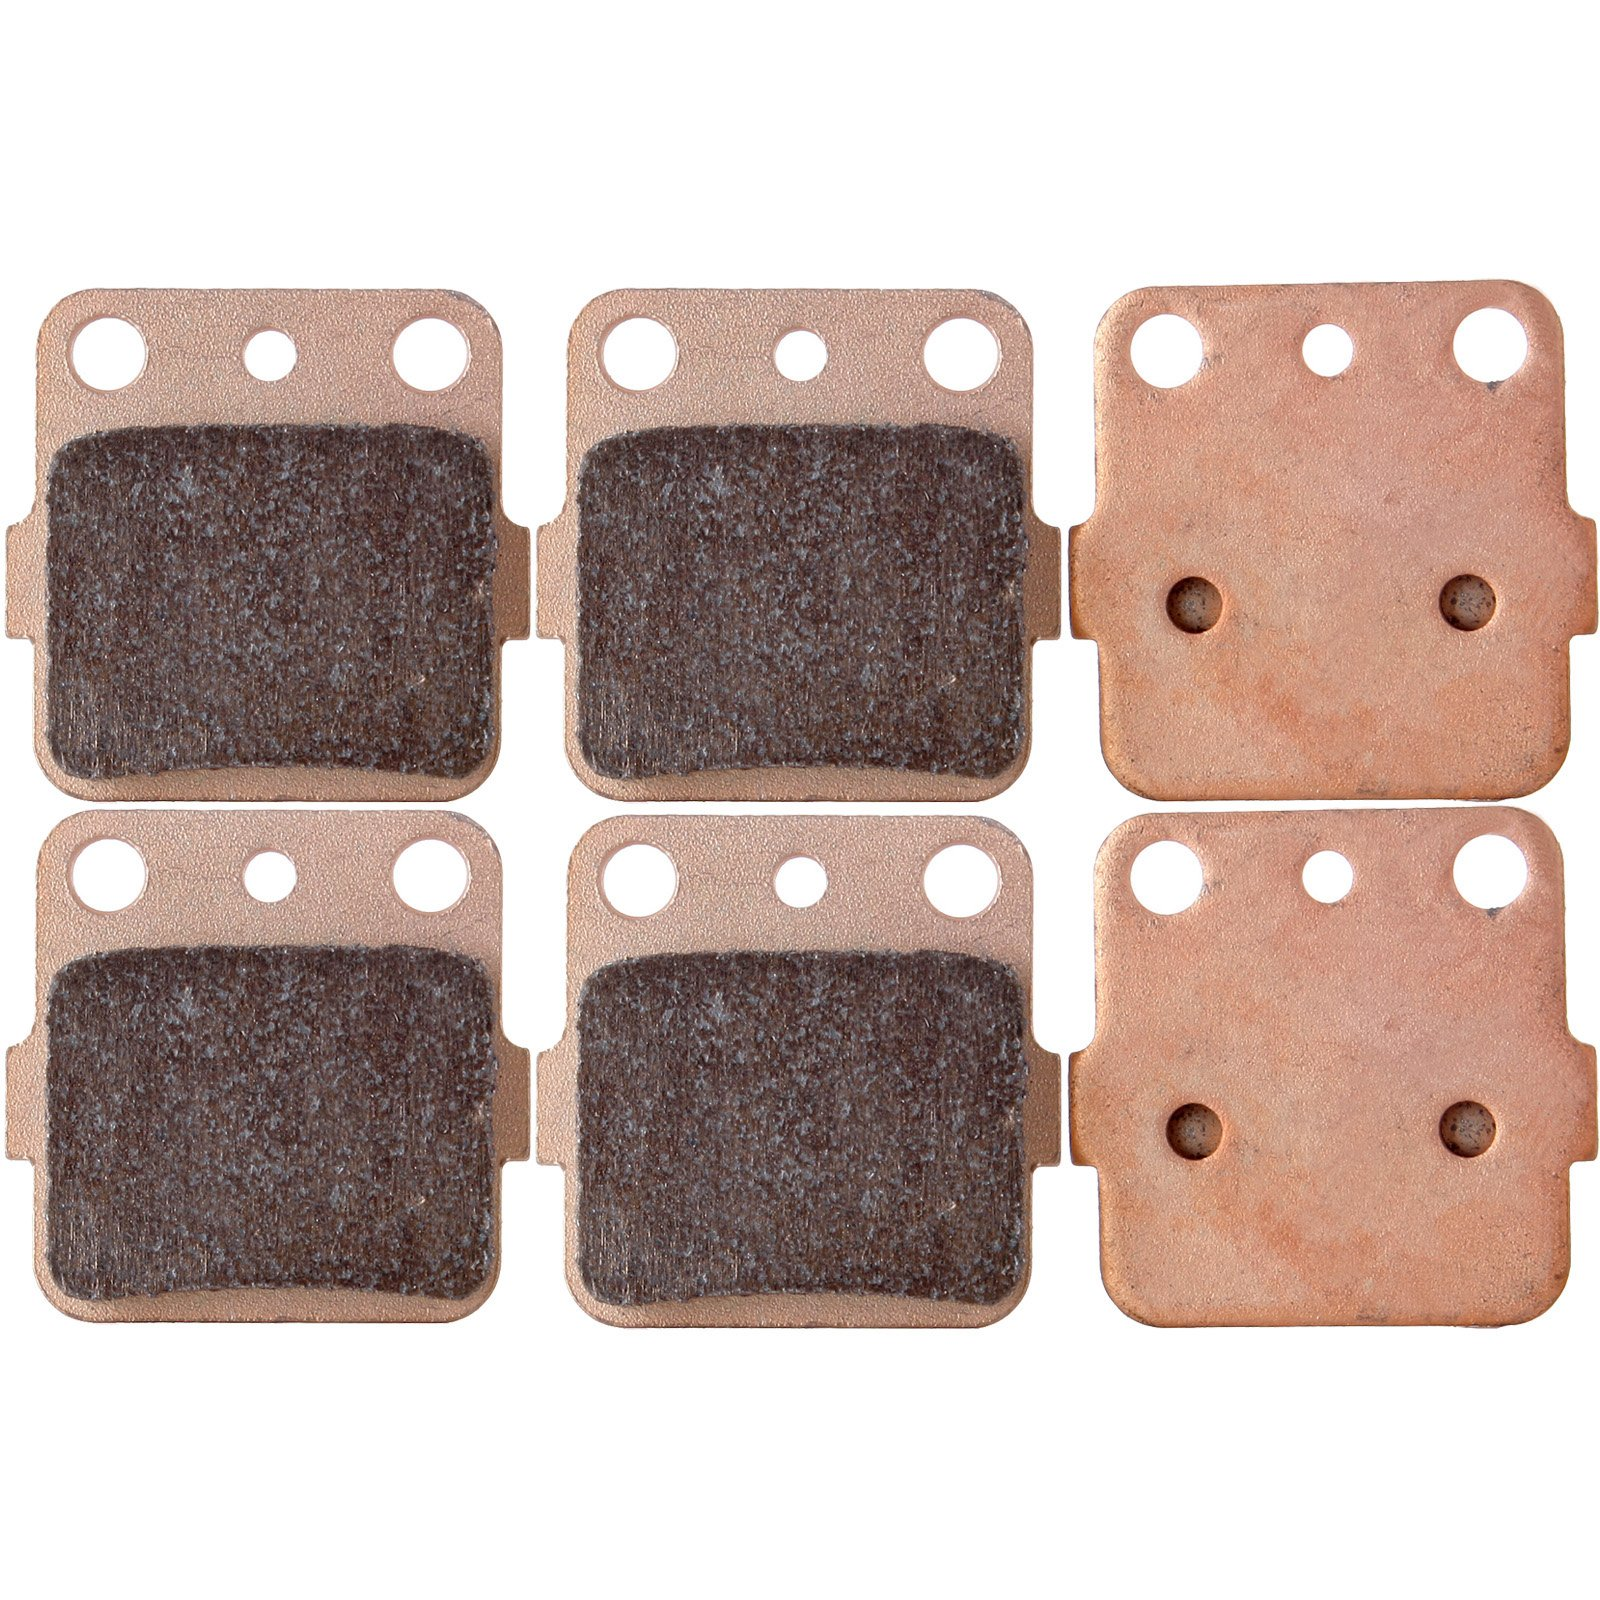 ECCPP FA84 Brake Pads Front and Rear Sintered Replacement Brake Pads Kits Fit for 1983-2012 Honda,1987-2012 Kawasaki,1987-1993 Suzuki,1987-2012 Yamaha by ECCPP